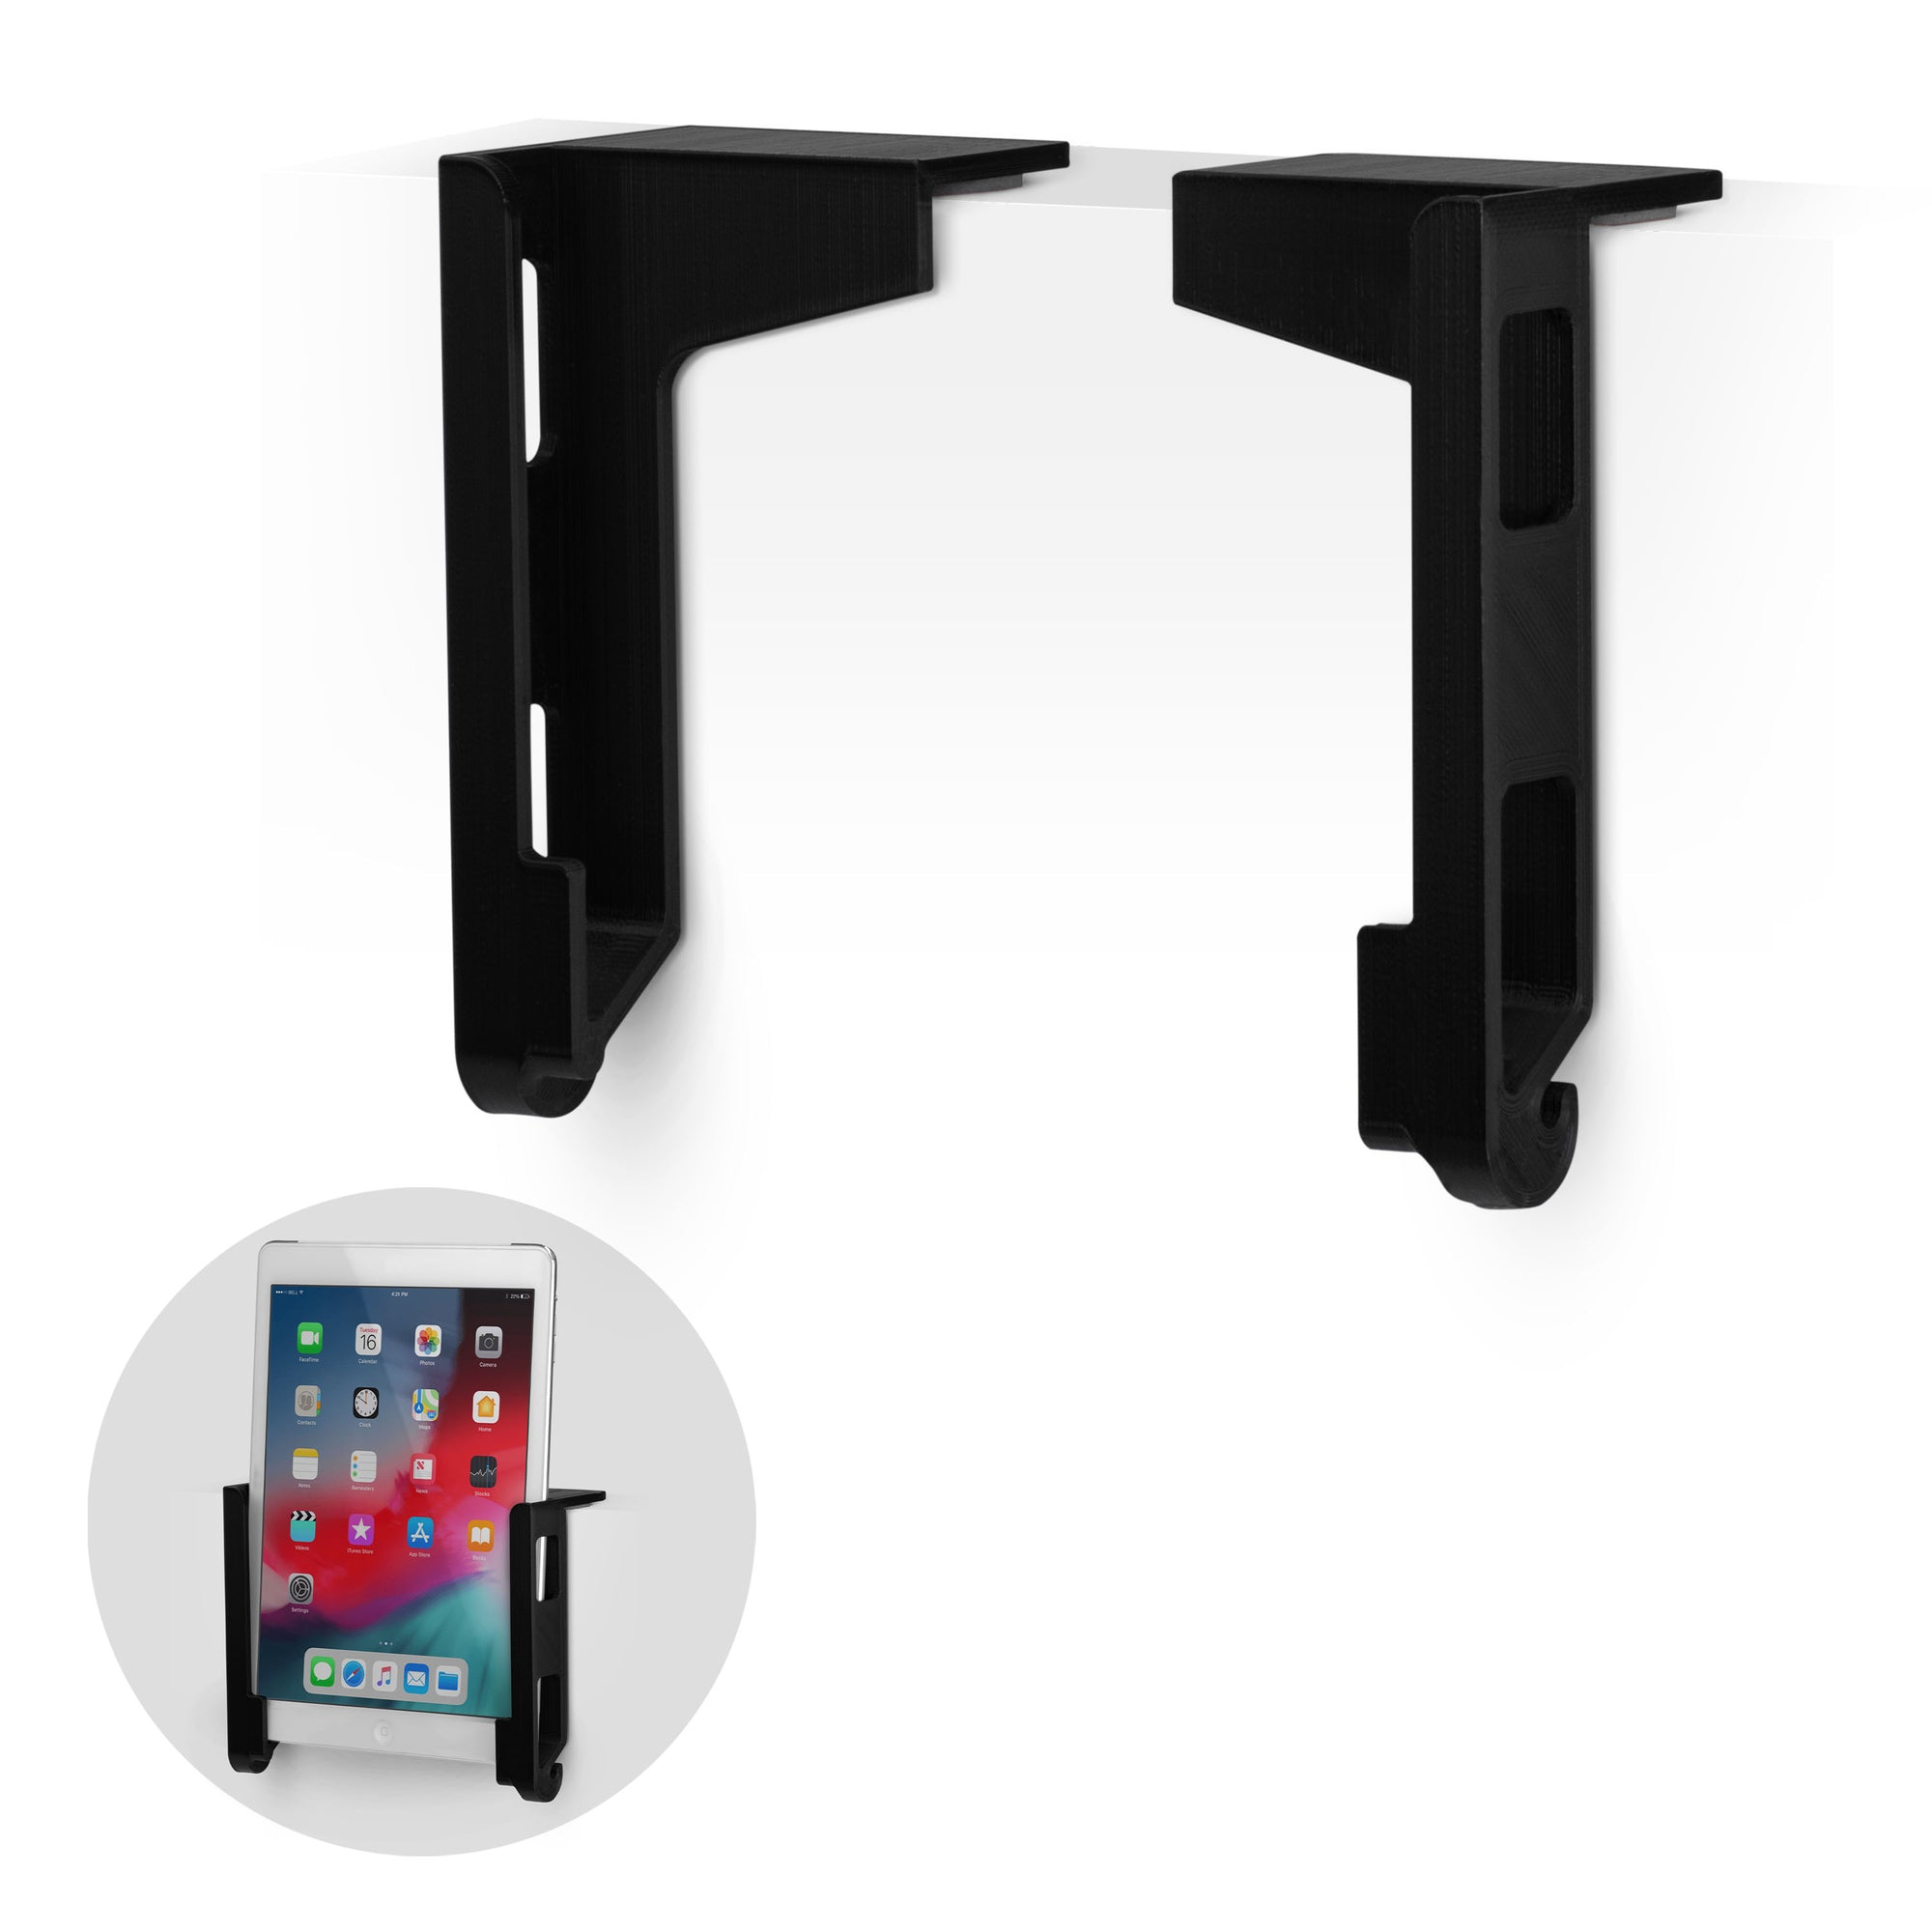 Universal Desk Mounted iPad and Android Tablet Hanger Holder - TDM01